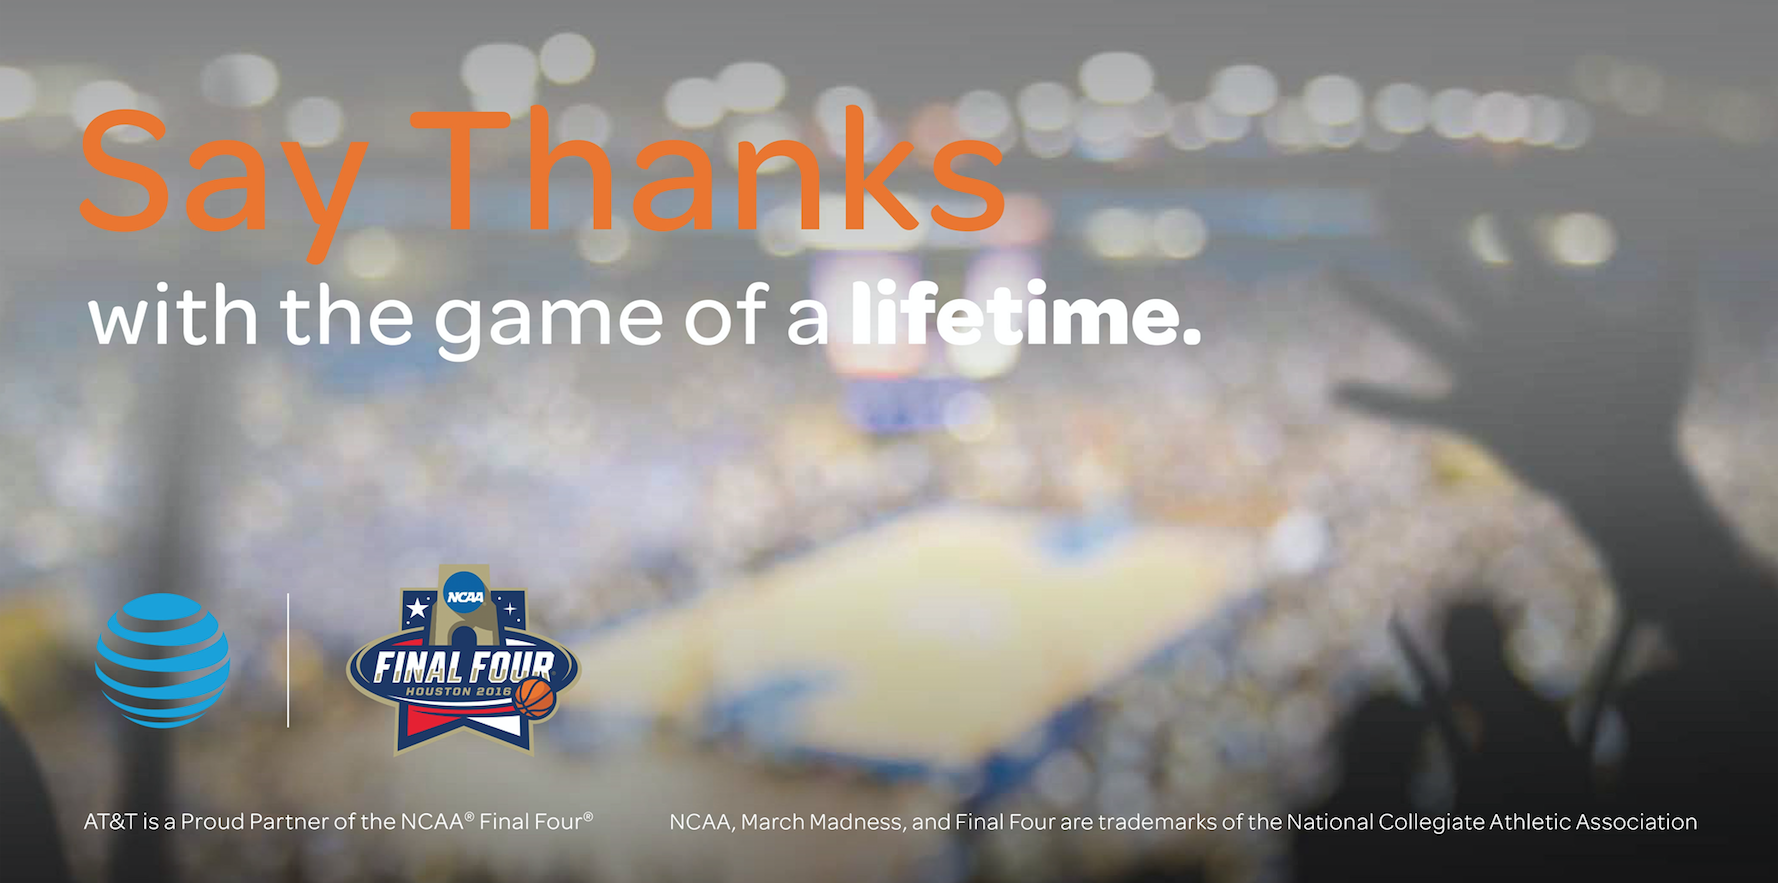 AT&T Pay it Fourward March Madness